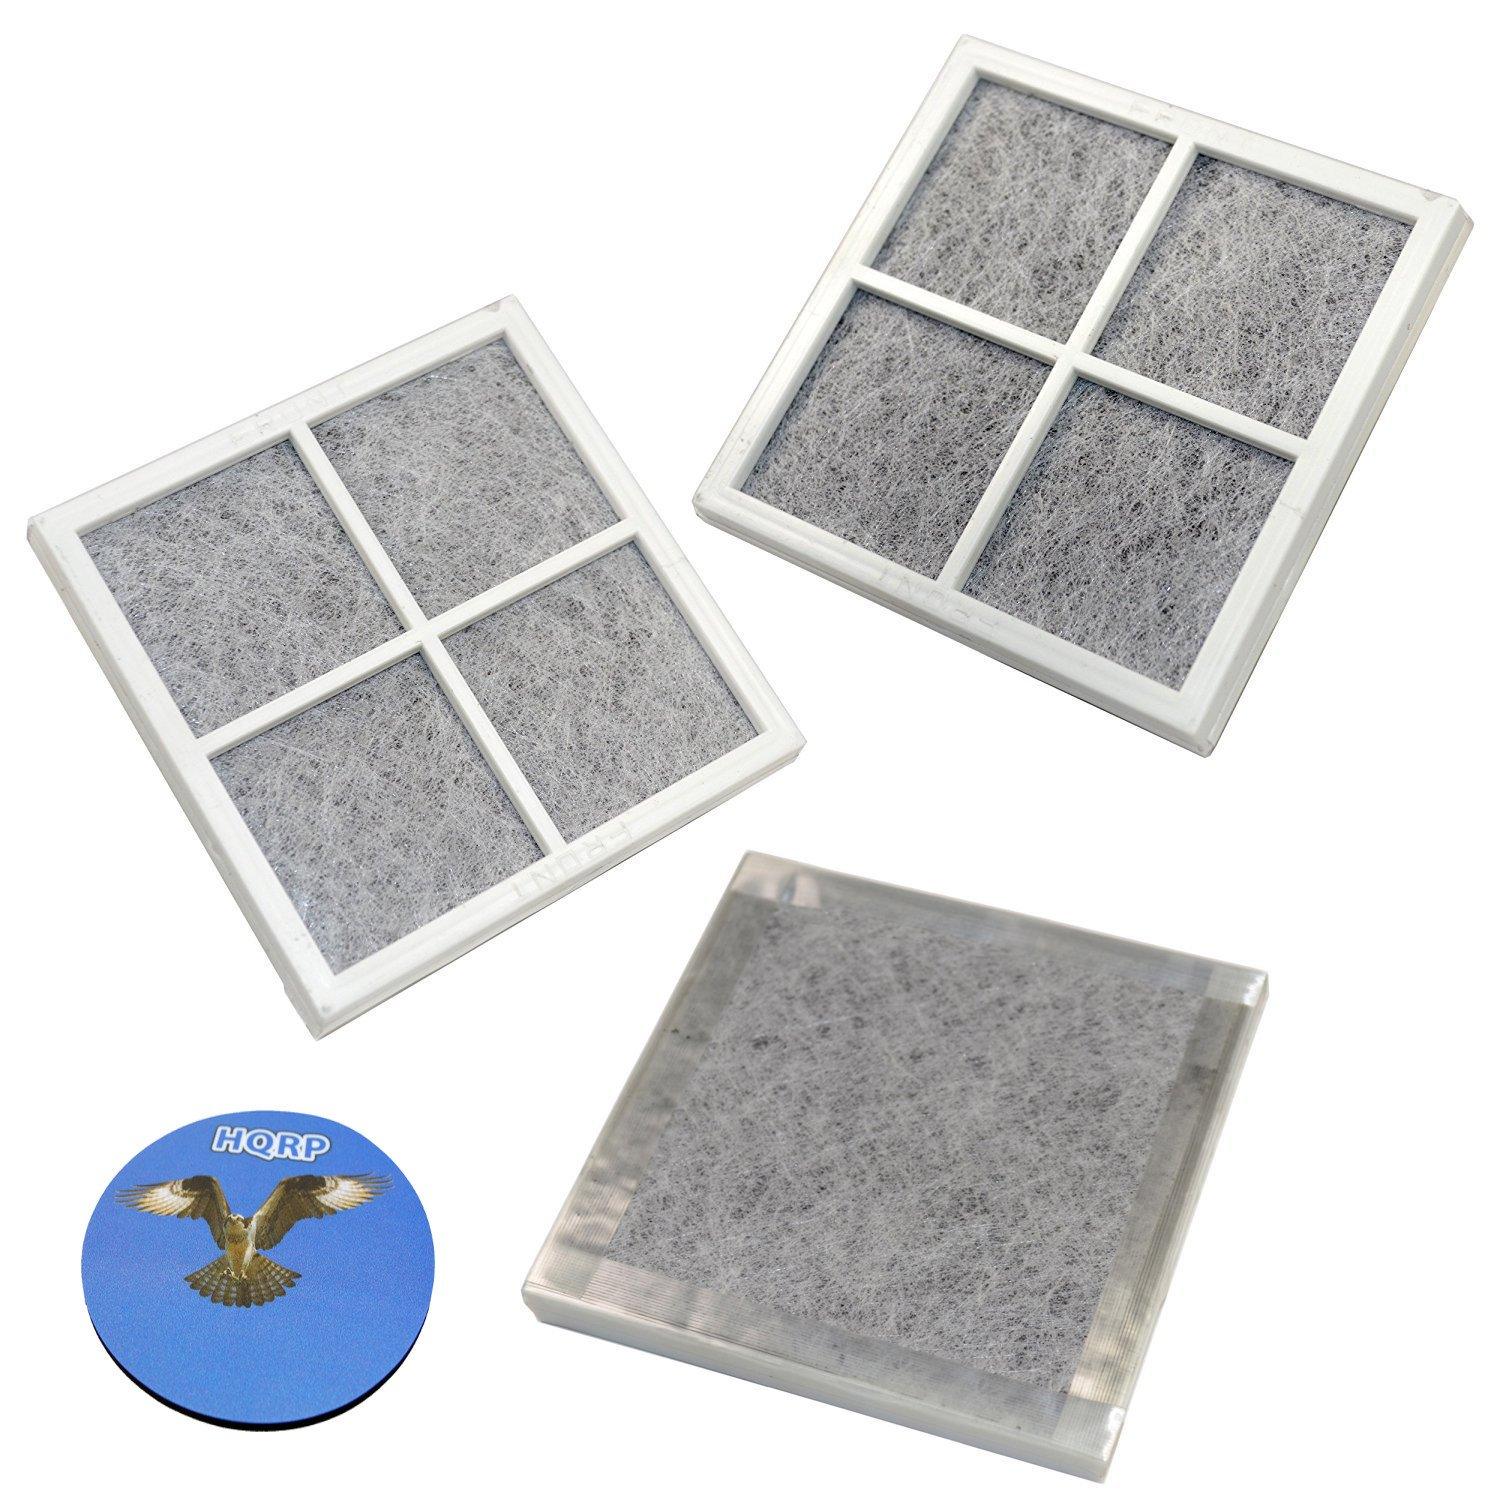 HQRP 3-pack Air Filters for Kenmore Elite Refrigerators 04609918000/469918 / 9918 Elite CleanFlow Replacement + HQRP Coaster